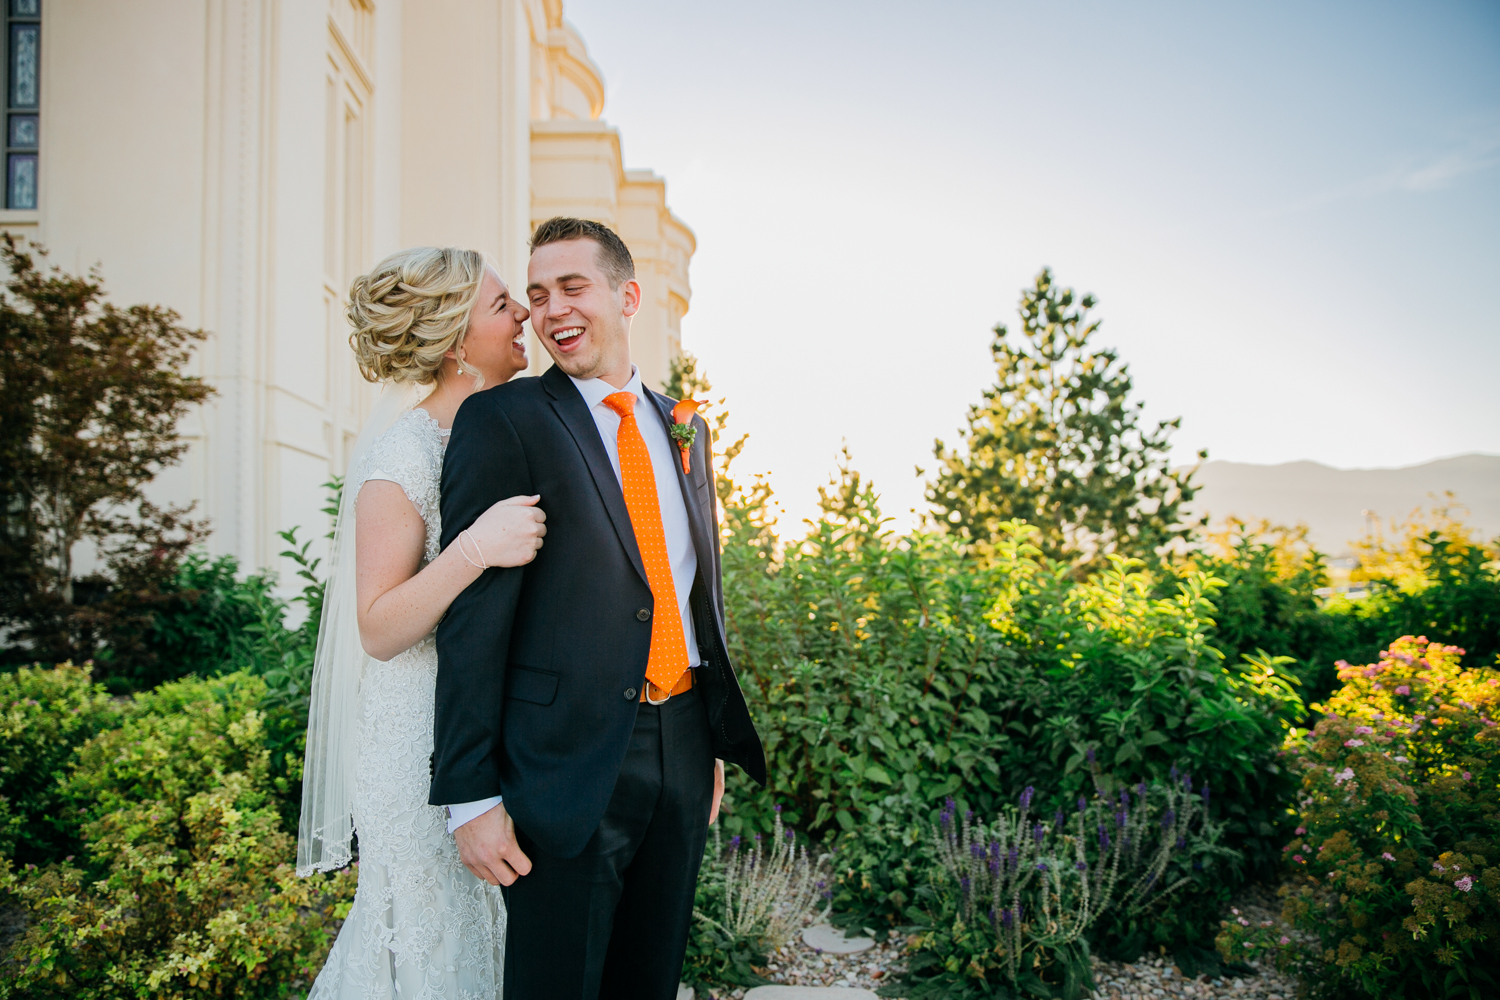 payson-temple-bridals-utah-wedding-photographer-46.jpg